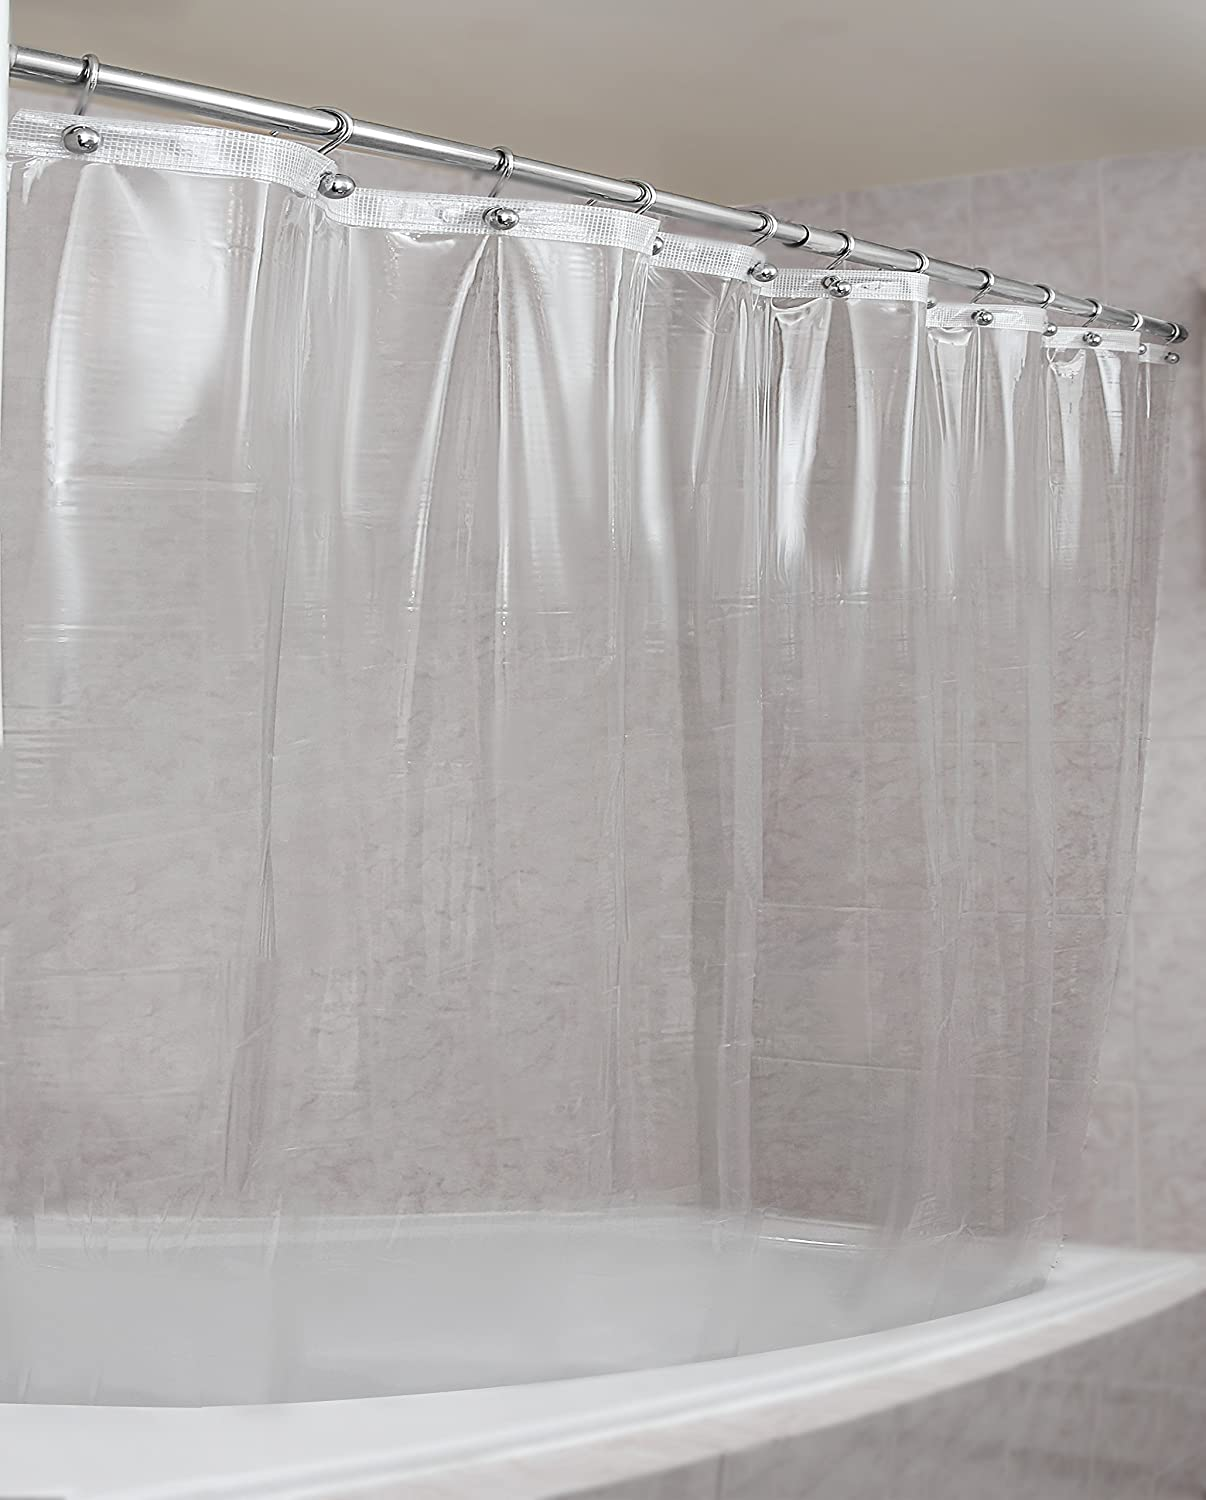 Strongest Mildew Resistant Shower Curtain Liner on the Market-100% Anti-Bacterial 10 Gauge Heavy Duty Liner-Waterproof